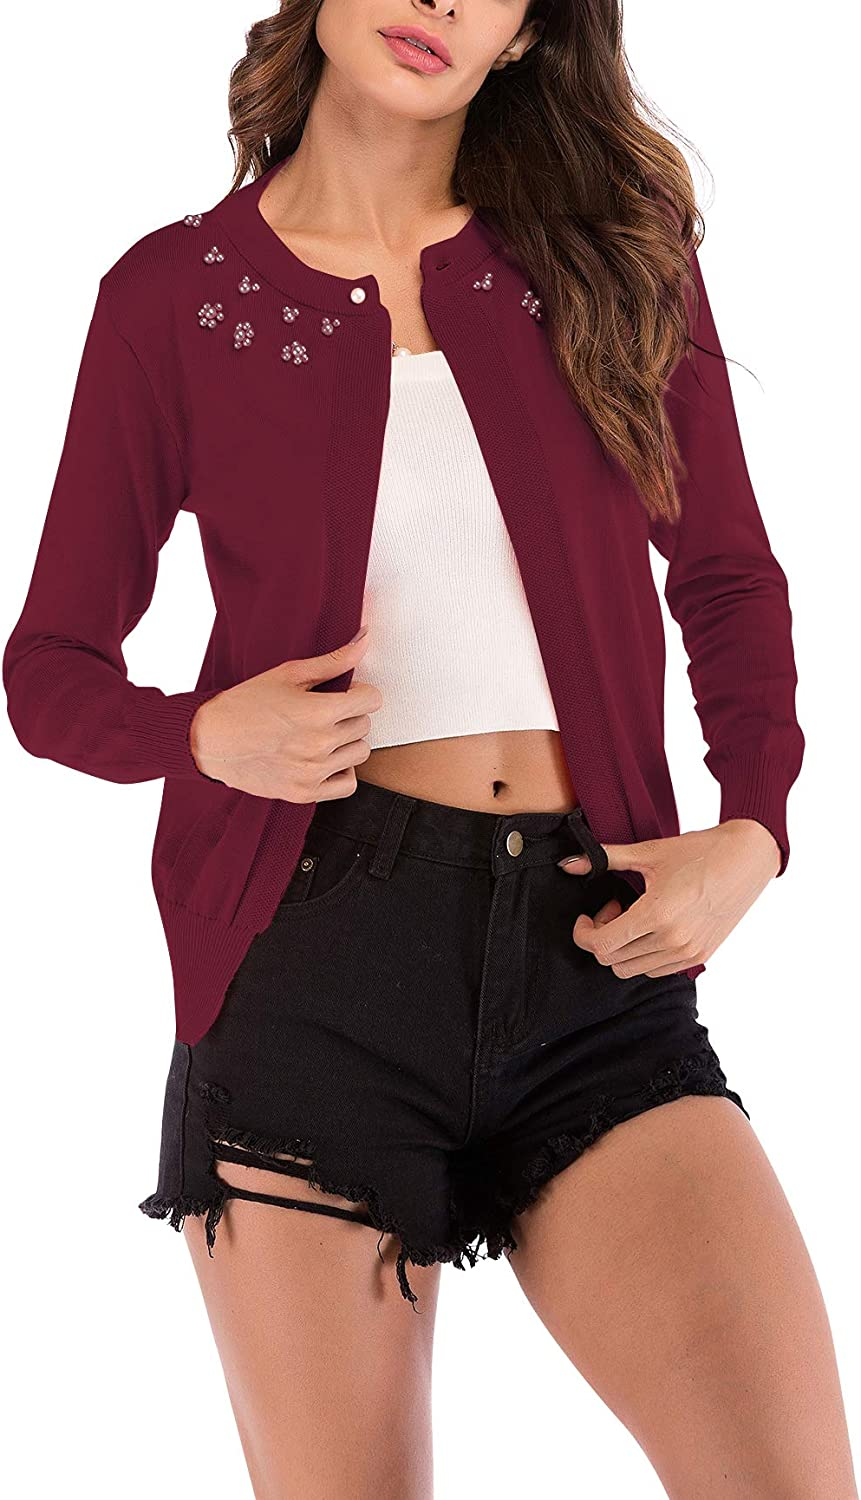 YAOMEI Womens Knitted Cardigan Bolero Shrug Casual Long Sleeves Open Front Jacket Sweater Beading Tops for Autumn